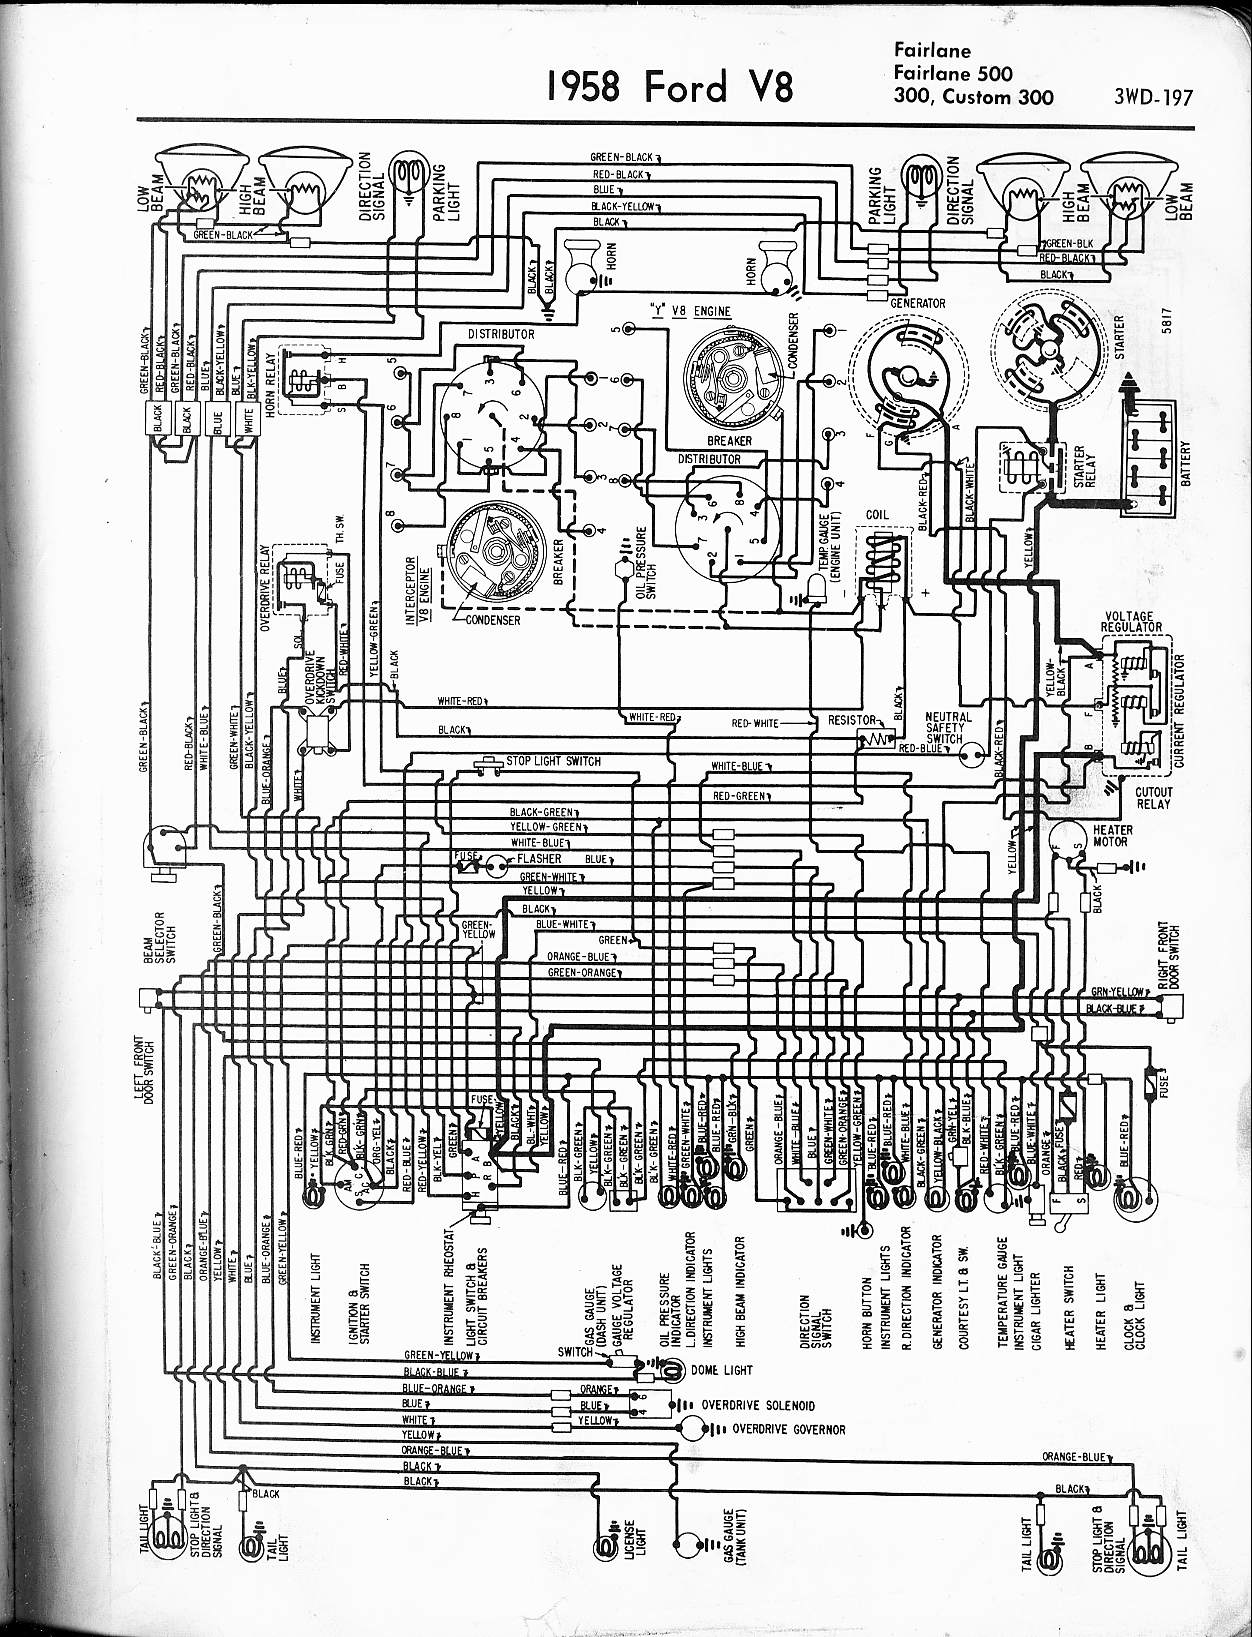 MWire5765 197 57 65 ford wiring diagrams 1966 ford fairlane wiring diagram at gsmportal.co